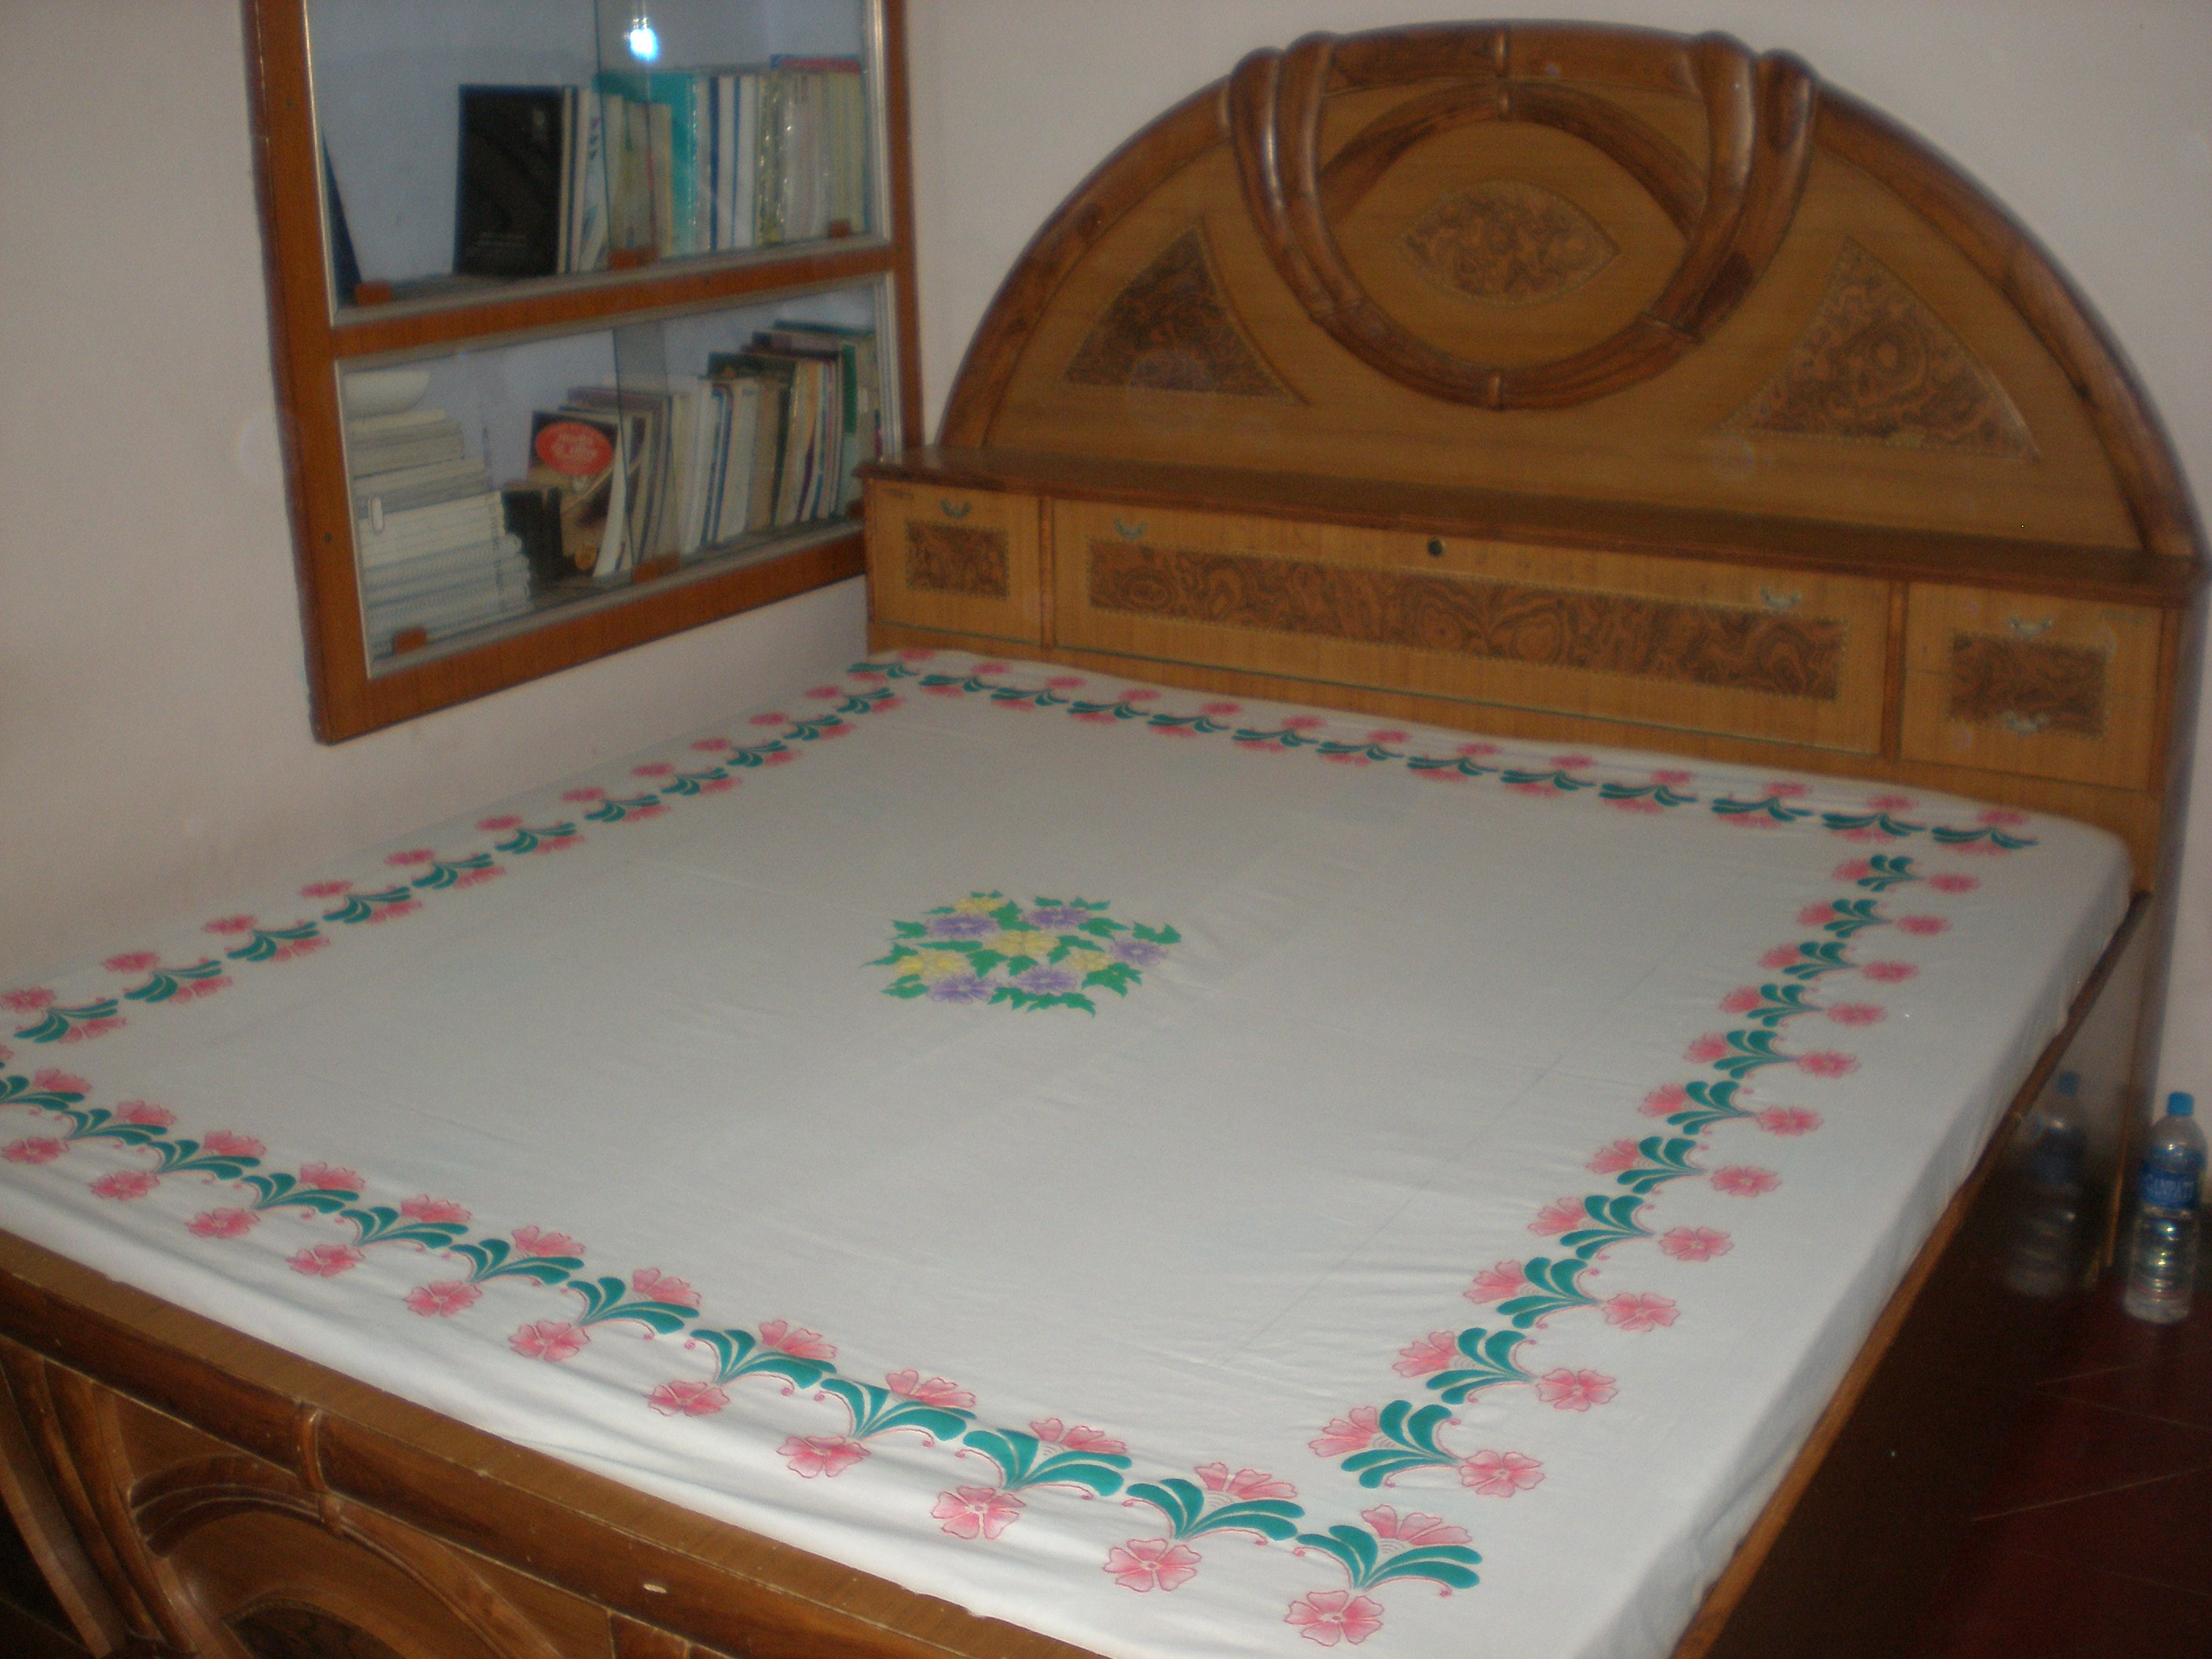 Bed sheets designs fabric painting - Fabric Painting One Double Bedsheet 2